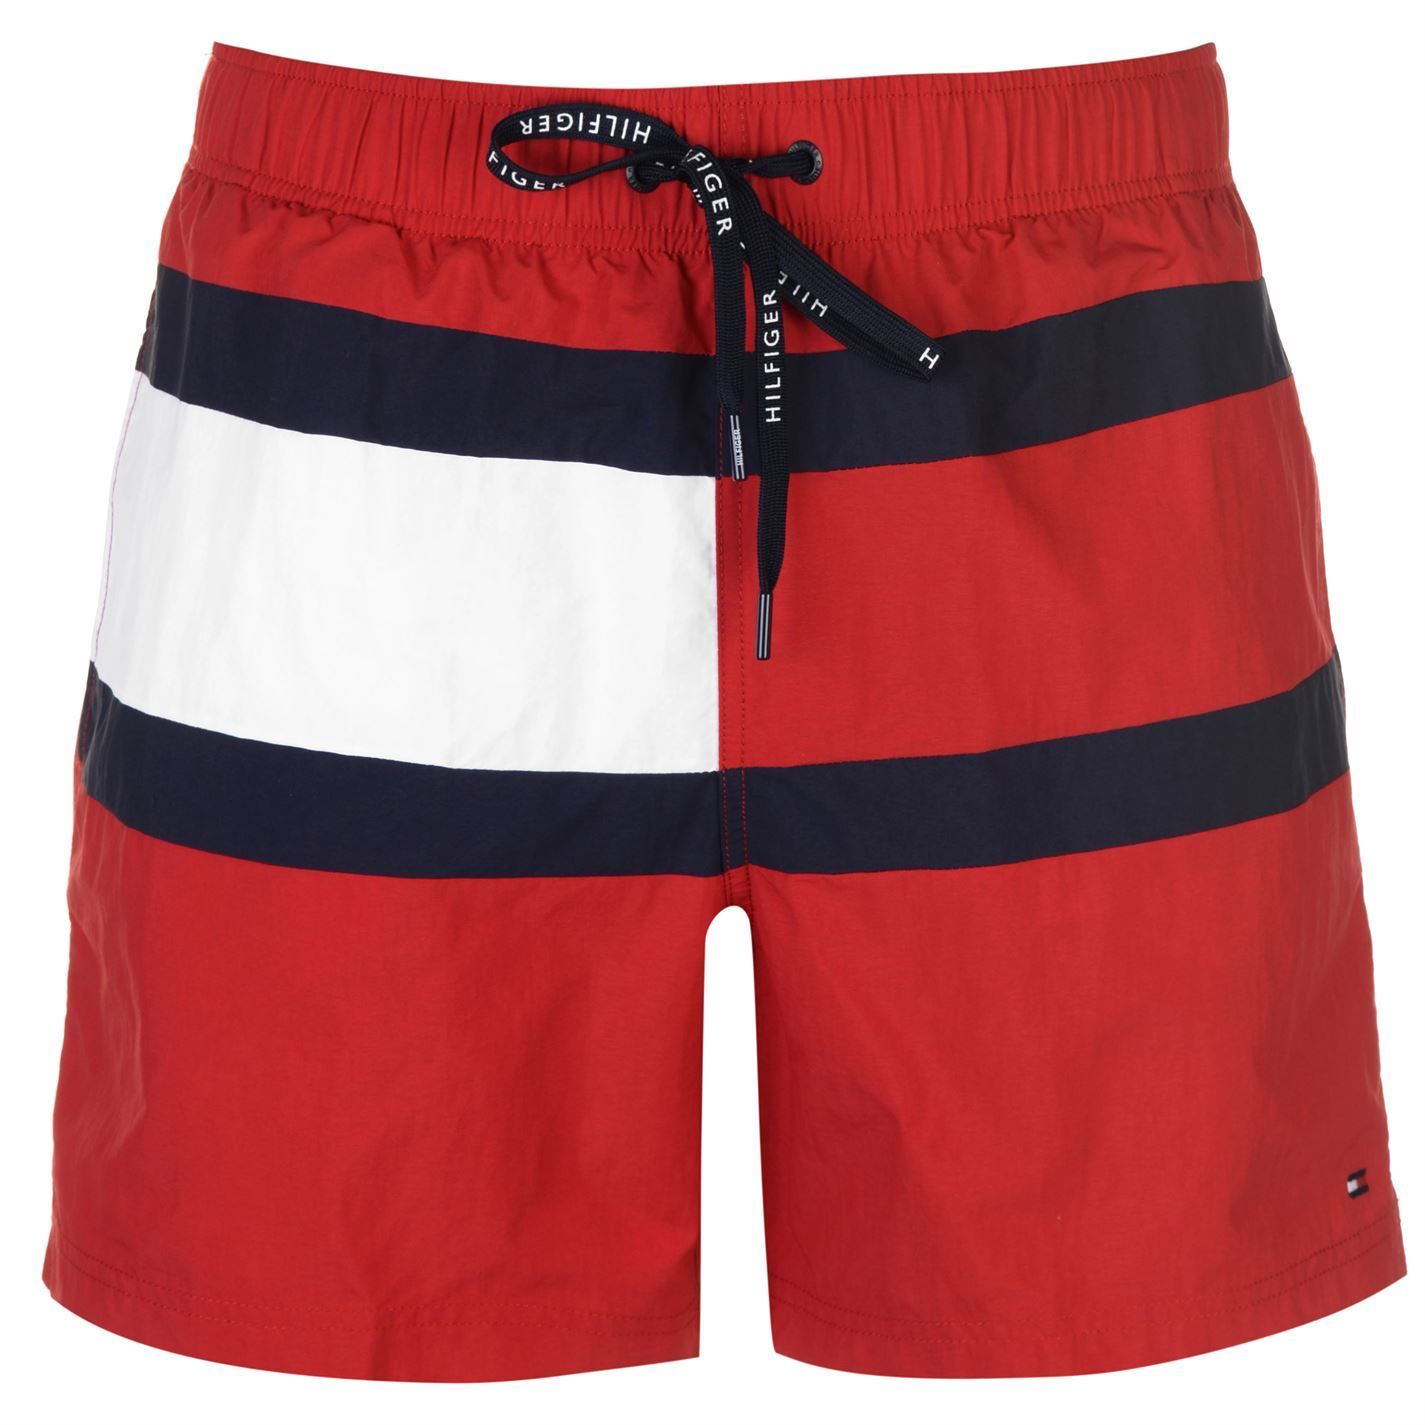 47d2f6f422 Image is loading Mens-Tommy-Hilfiger-Drawstring-Swim-Shorts-Lightweight-New